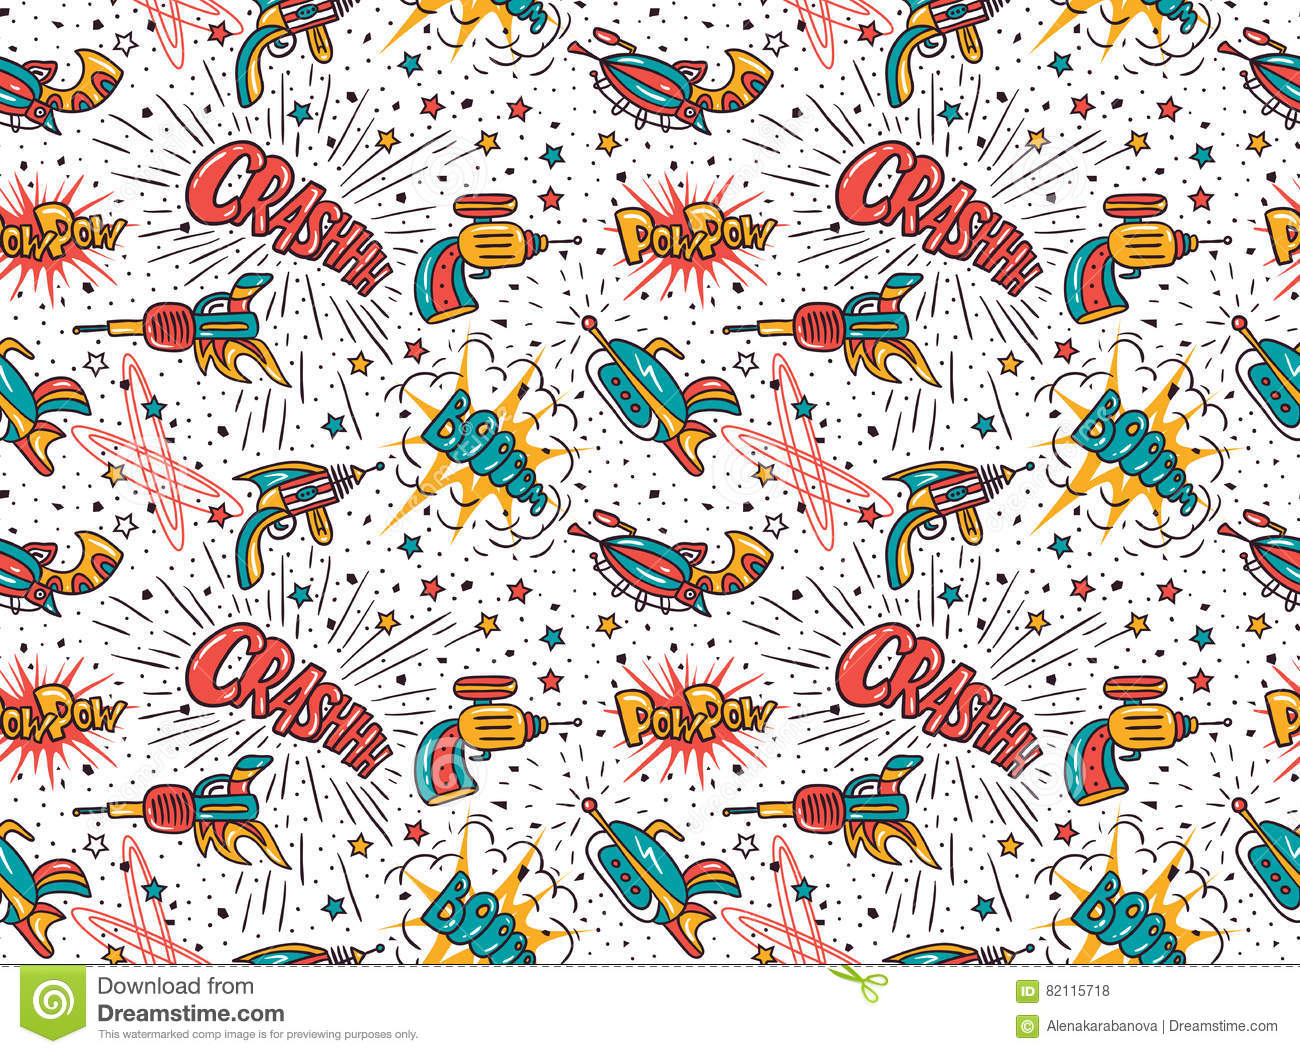 Vector Seamless Pattern Star Wars With Futuristic Weapon And Cartoon Lettering Crash Boom Pow Pow Stock Vector Illustration Of Humor Line 82115718